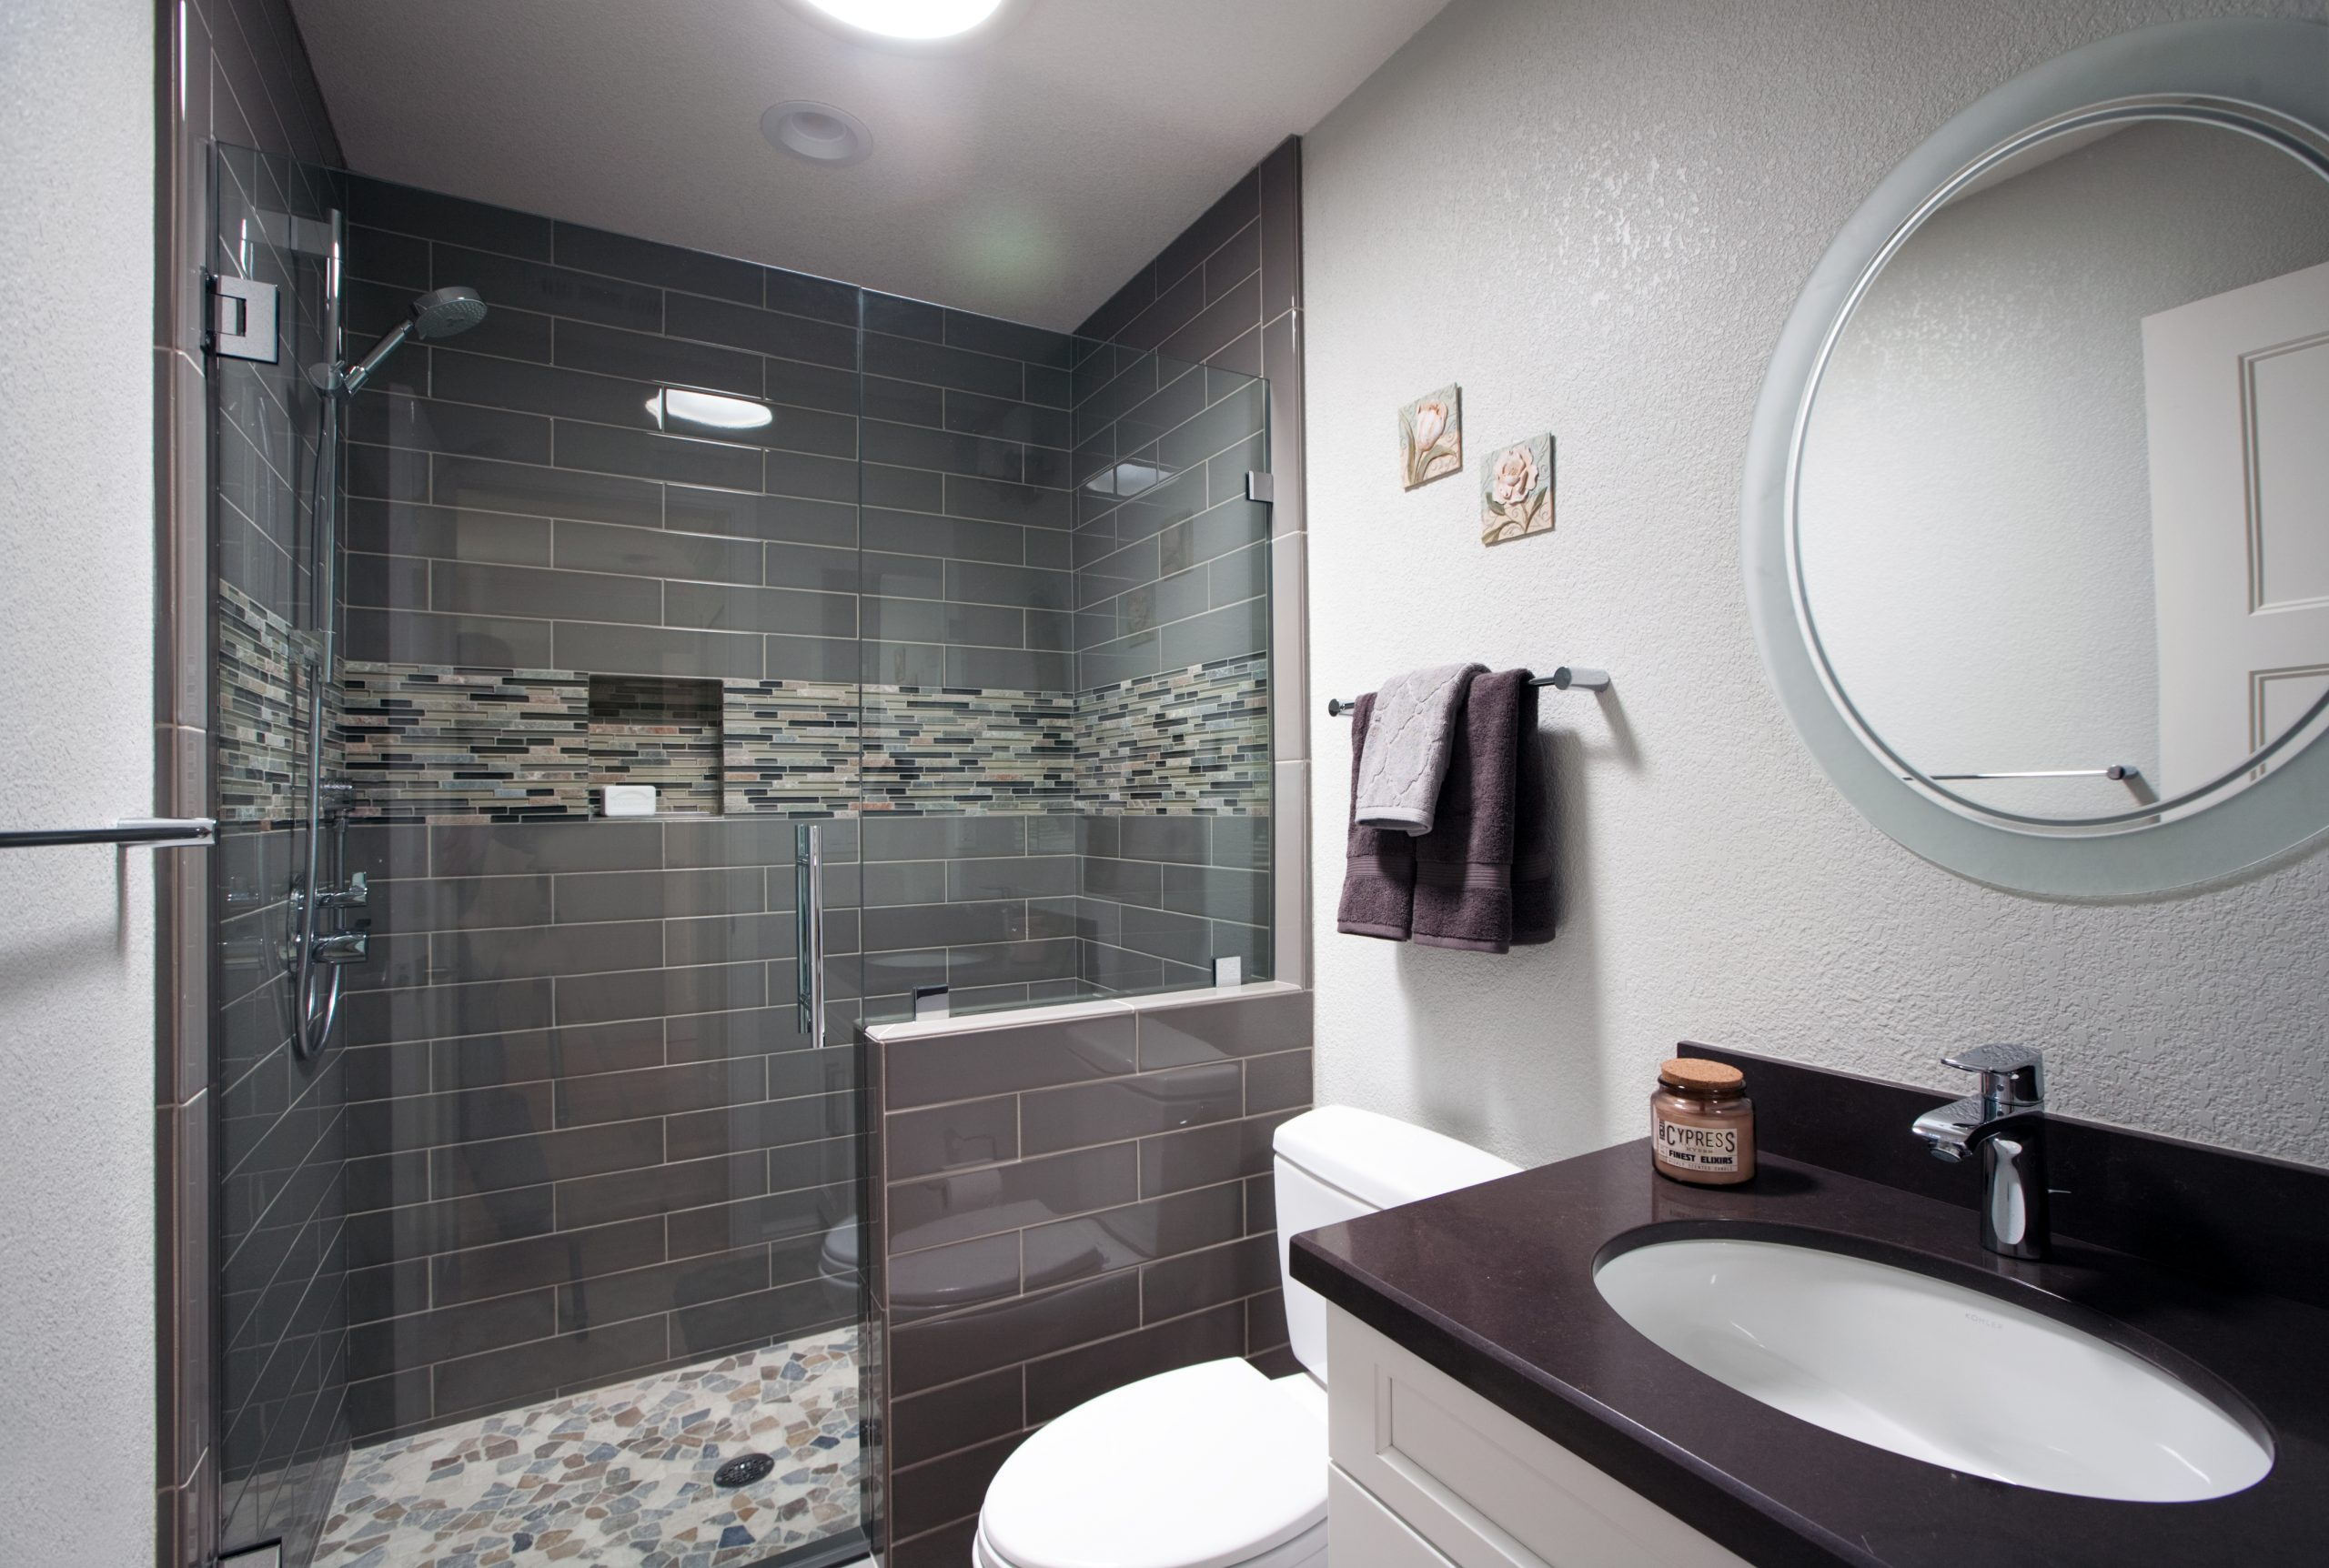 A modern bathroom with grey tile and stone shower floor.